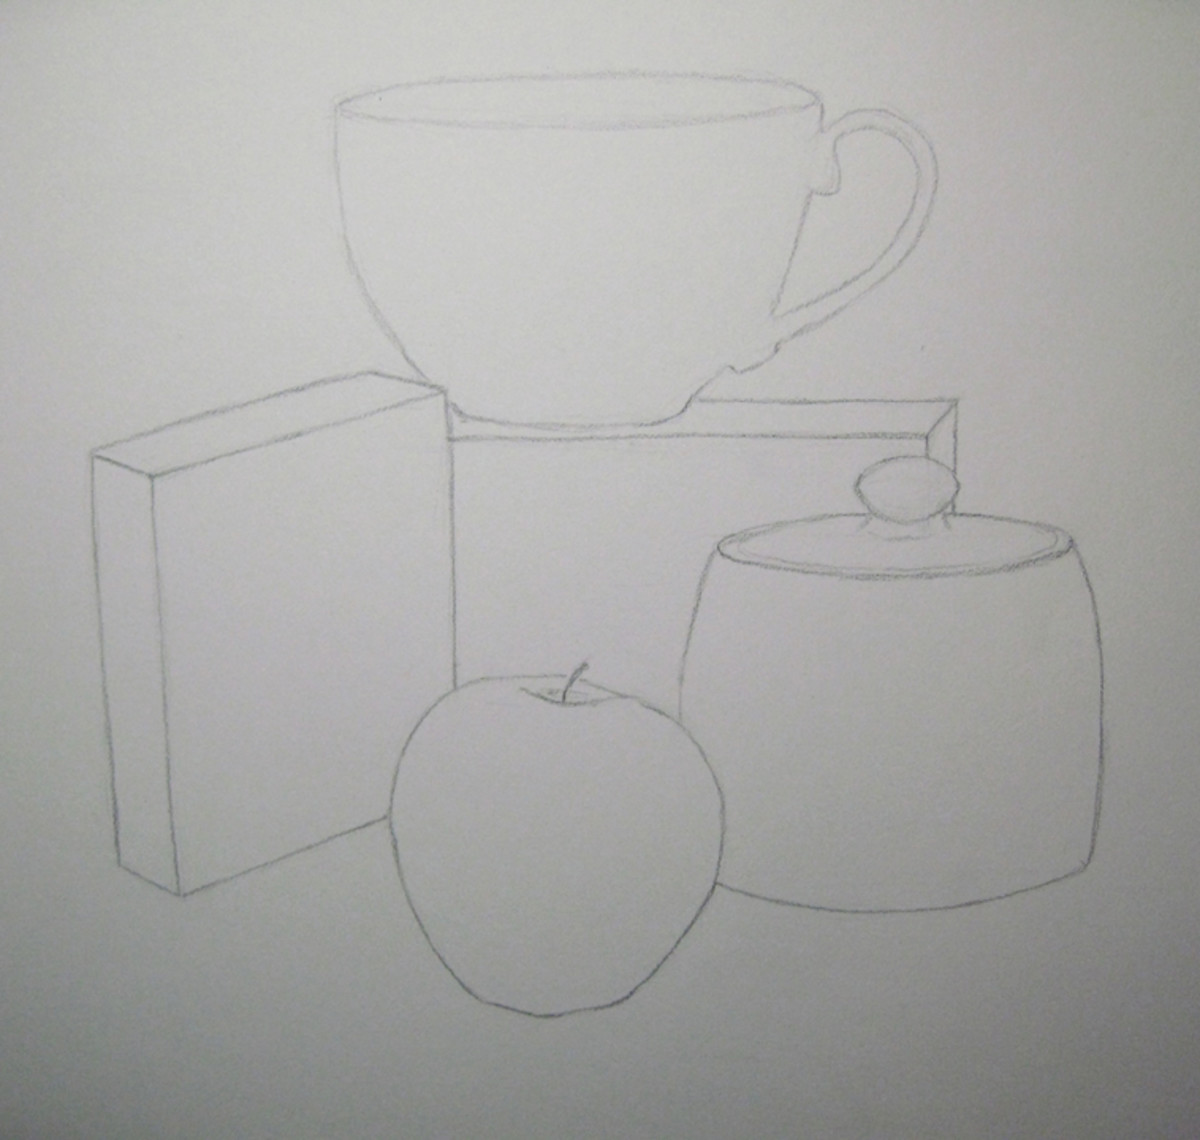 Still Life drawing of object outlines